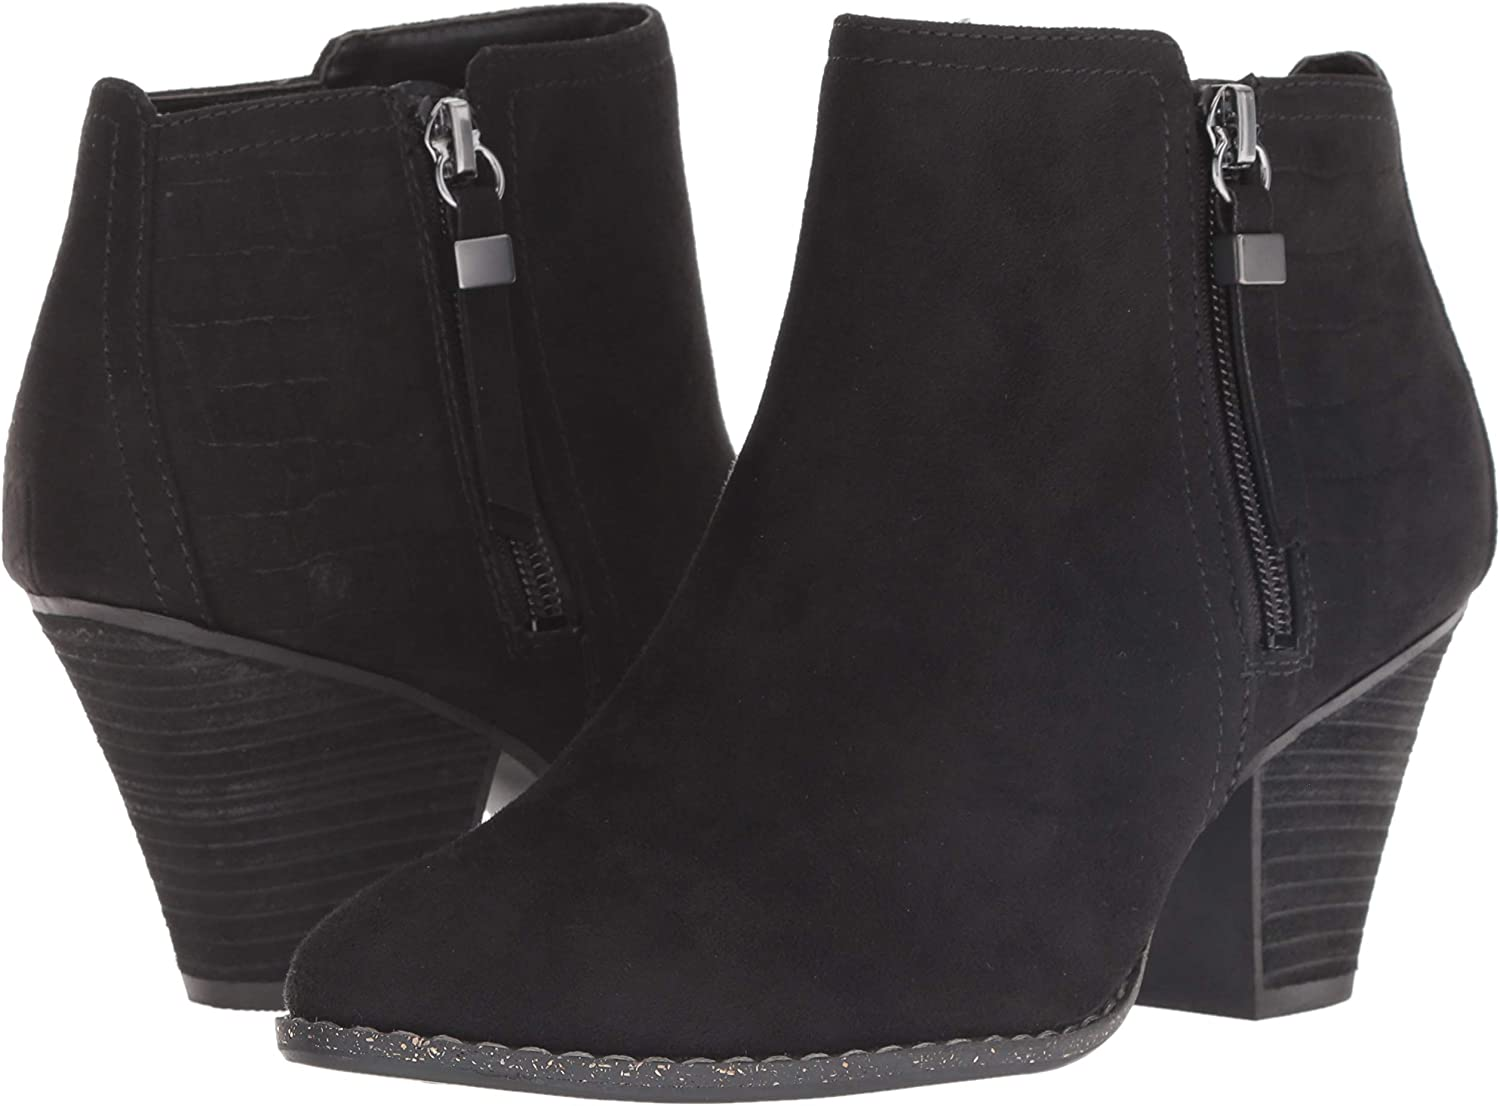 Scholls Shoes Womens Cunning Ankle Boot Dr